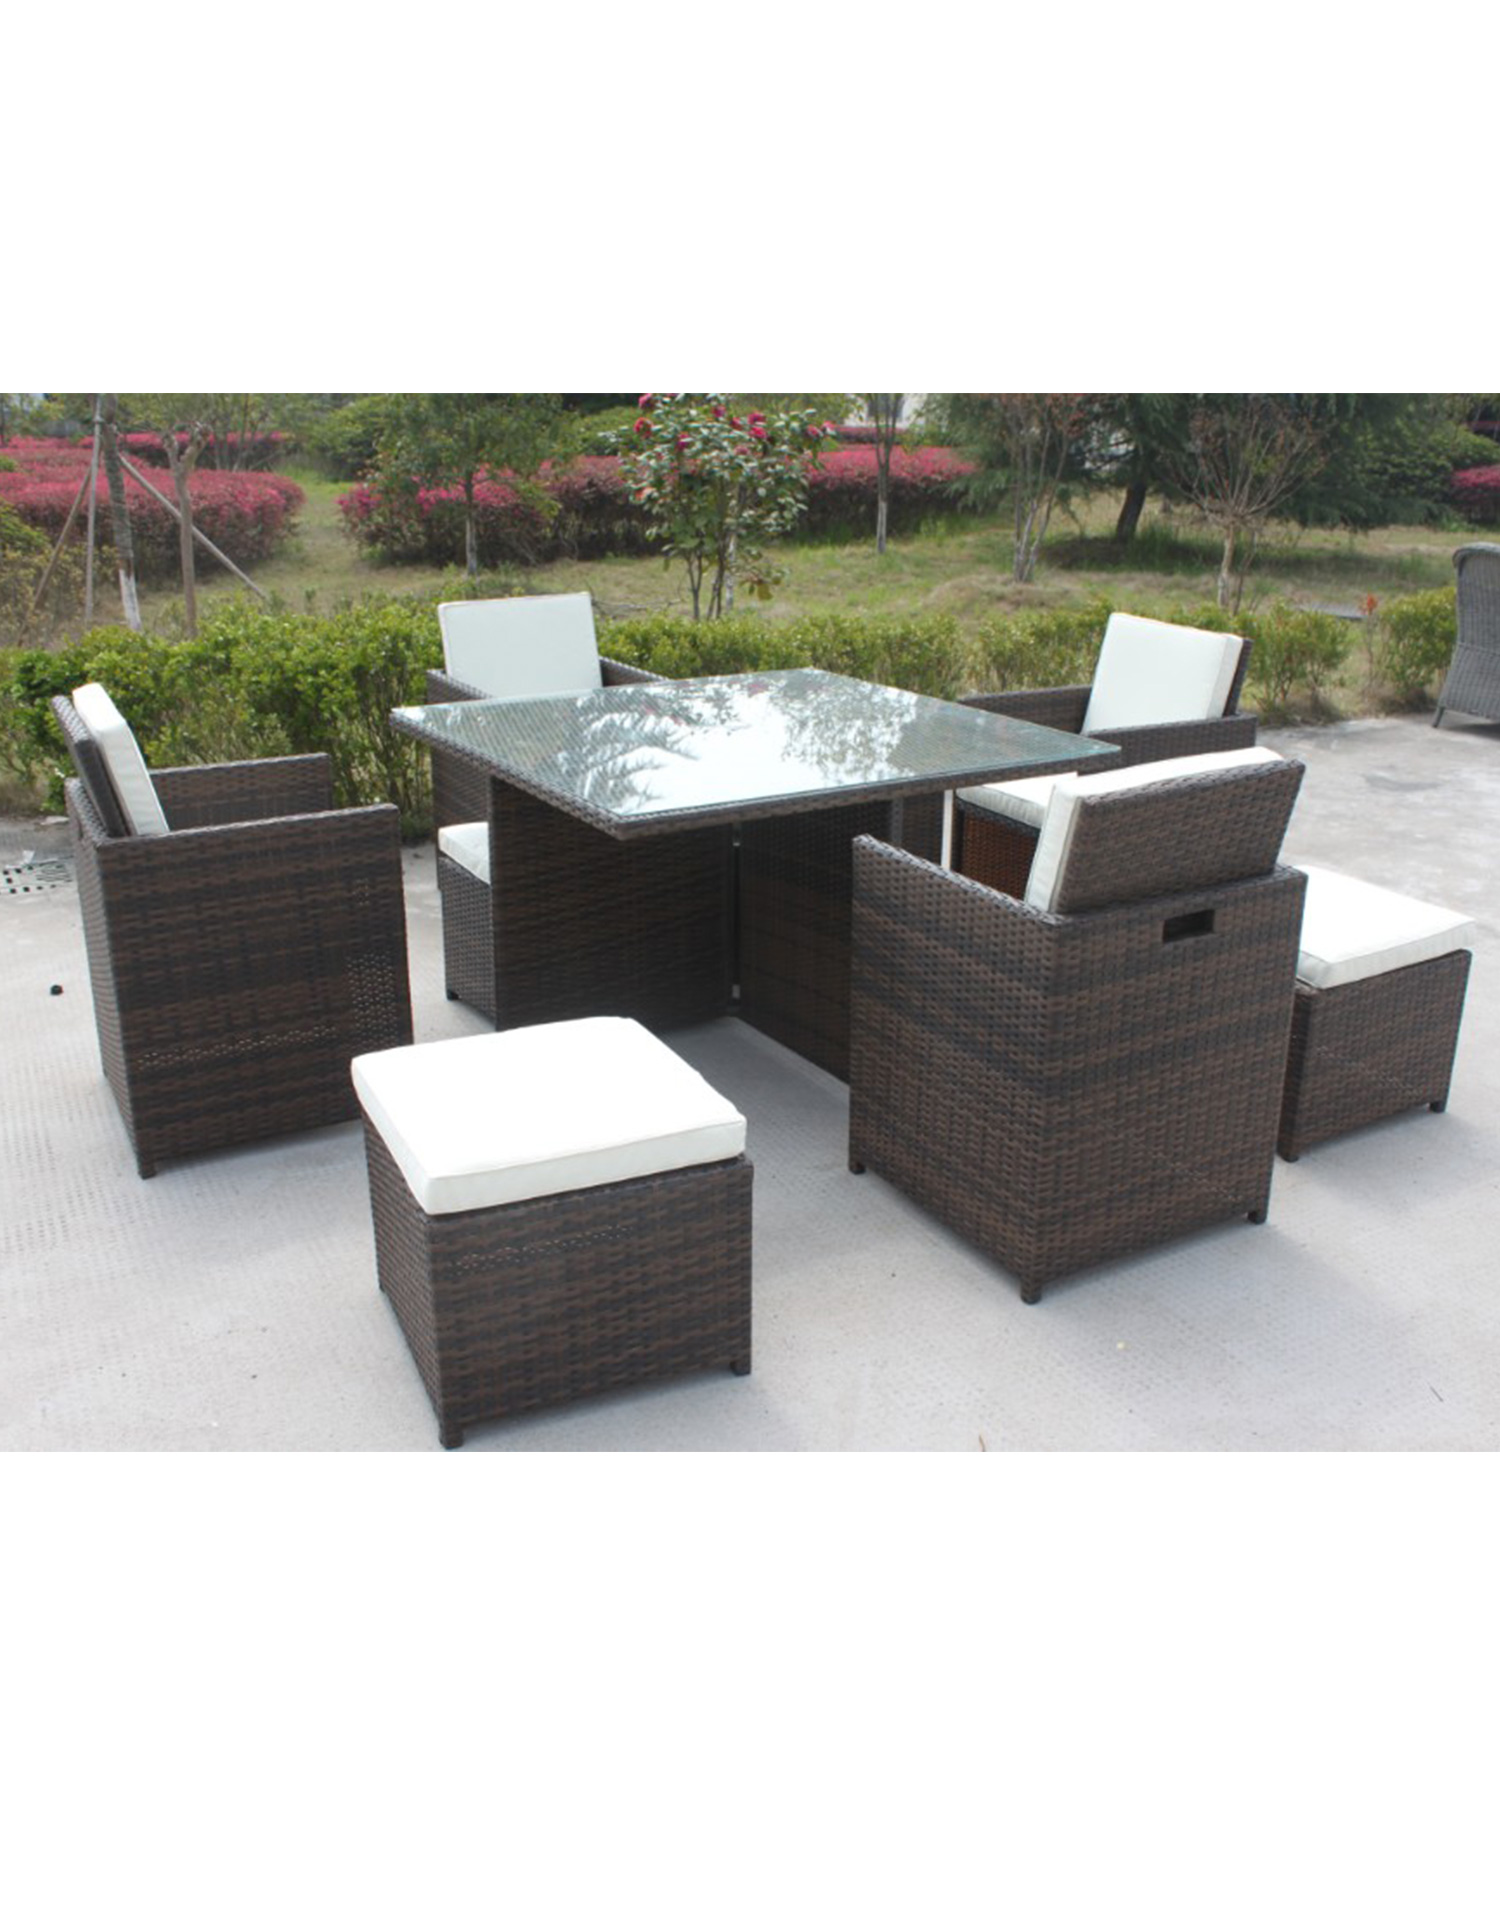 gartenmobel rattan set. Black Bedroom Furniture Sets. Home Design Ideas